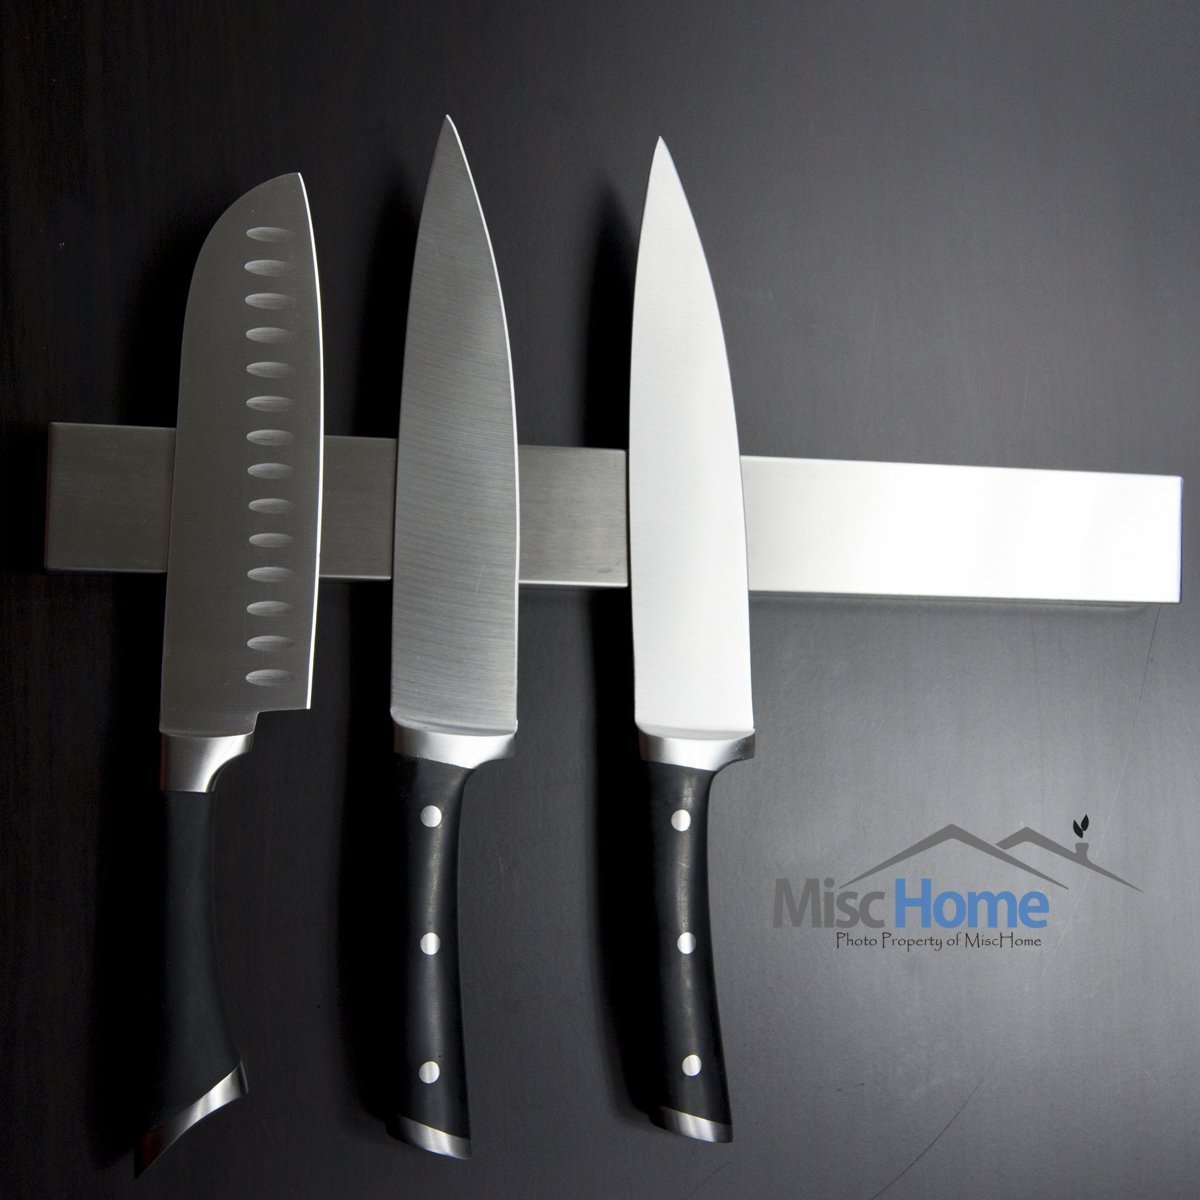 +Hot+ 16 Inch Stainless Steel Magnetic Knife Holder High Quality Magnetic Knife Strip, Magnetic Knife Bar Stainless Steel Easy to Install